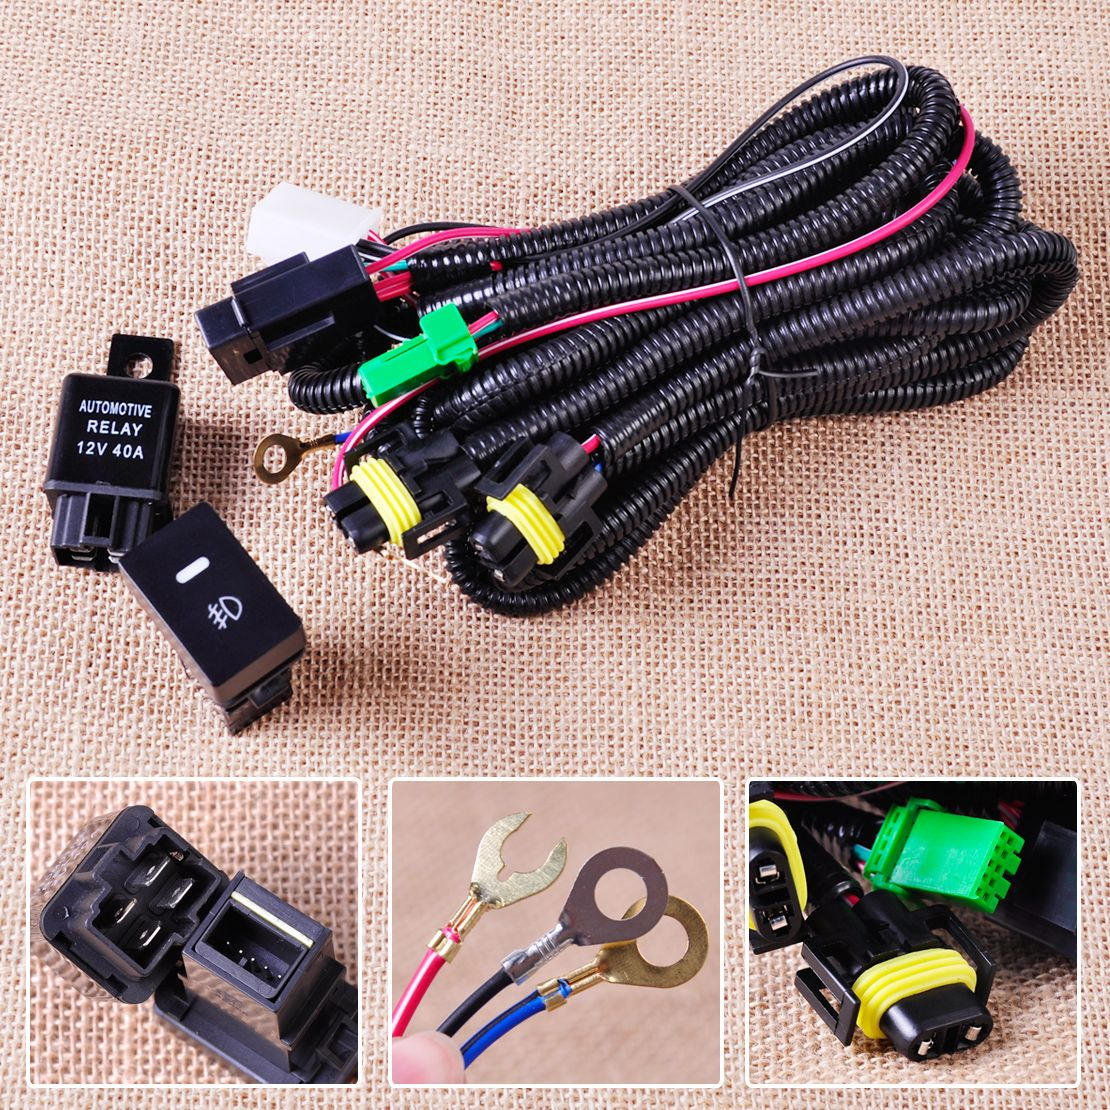 CITALL H11 Fog Light Lamp Wiring Harness Sockets Wire + Switch with LED indicators Automotive Relay for Ford Focus Acura Nissan